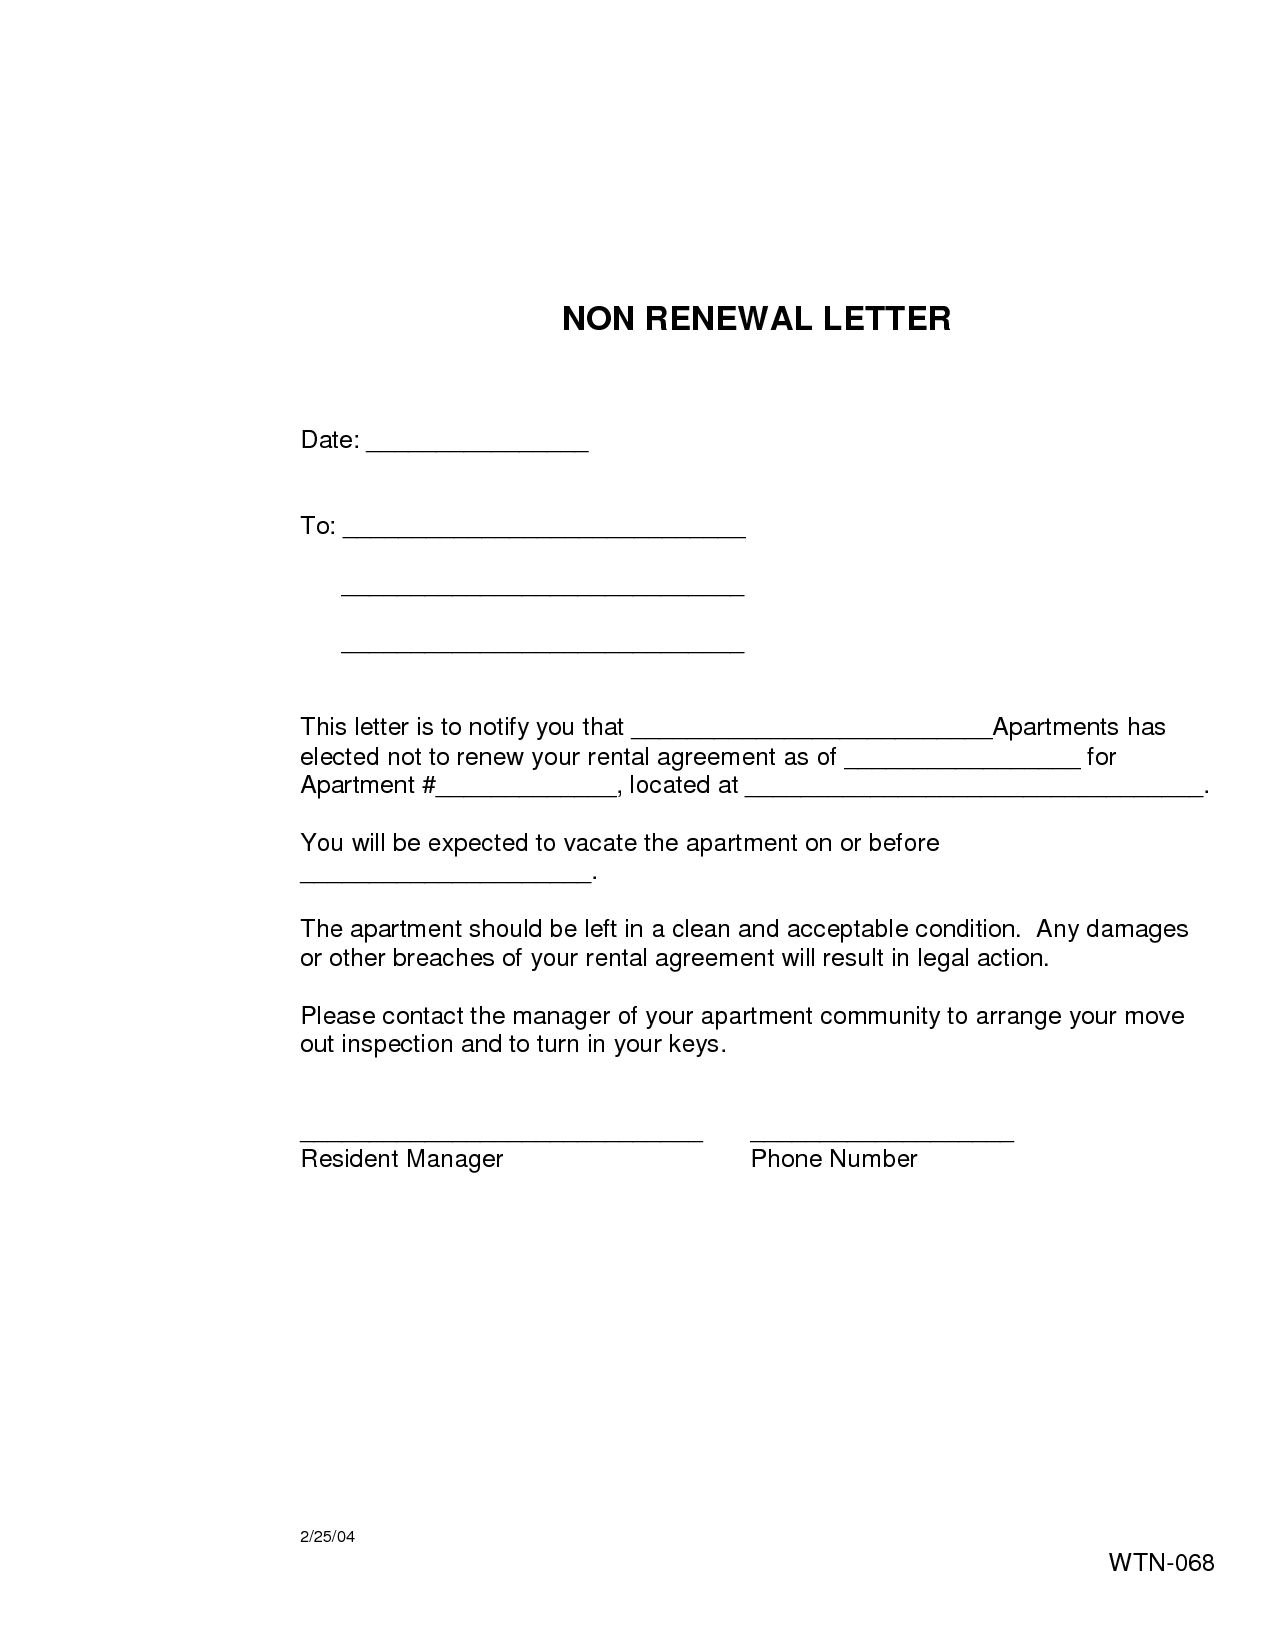 Lease non renewal letter sample dolapgnetband lease non renewal letter sample spiritdancerdesigns Choice Image